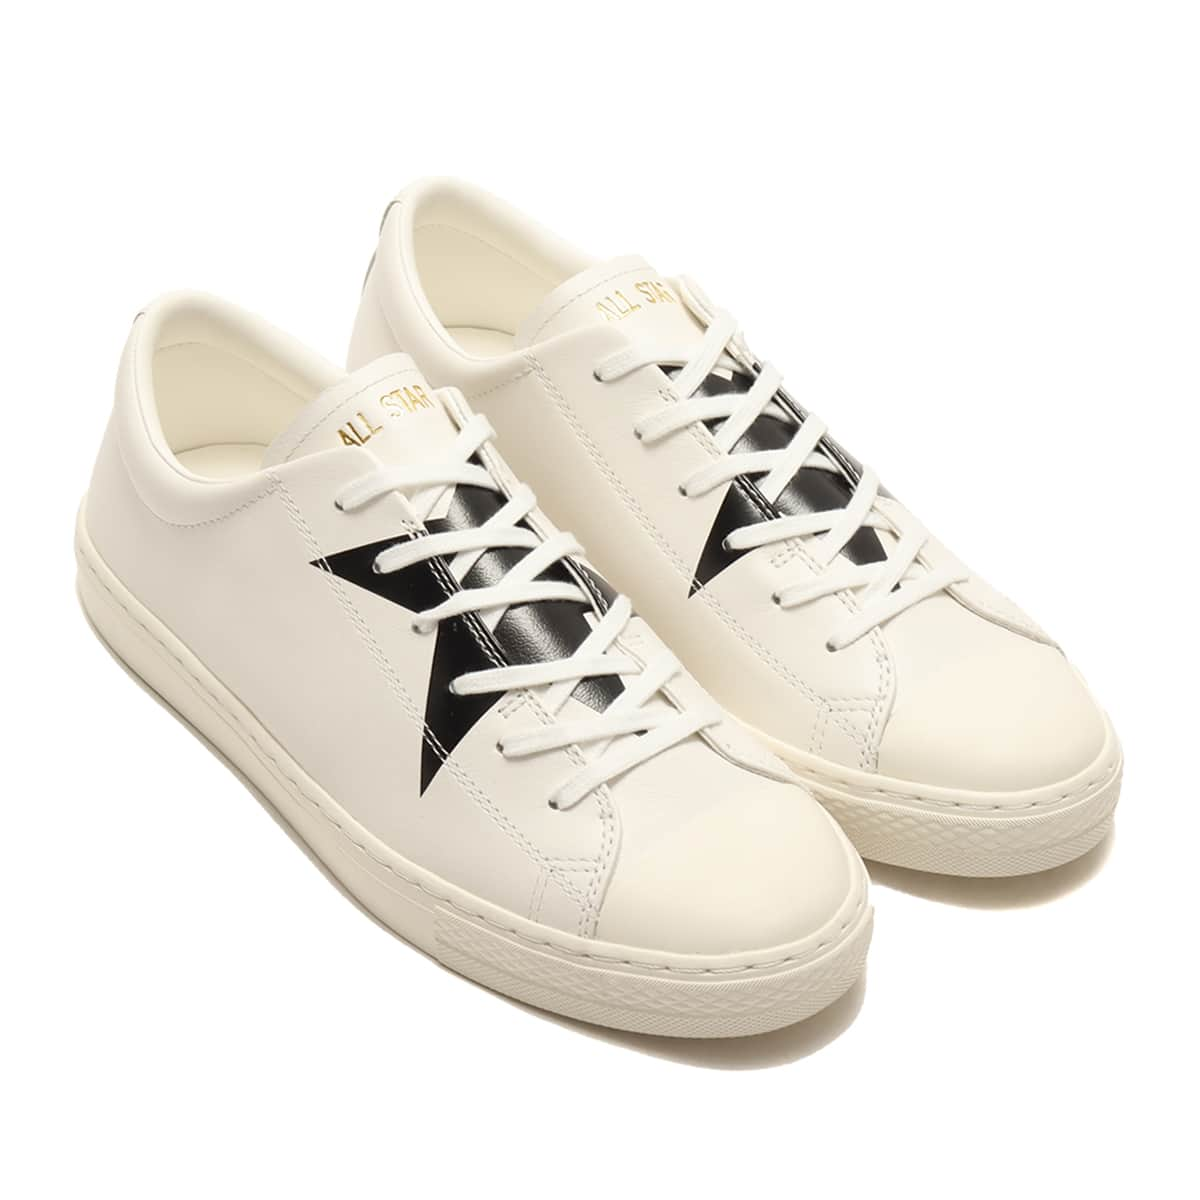 CONVERSE ALL STAR COUPE BS SLIP OX WHITE/BLACK 21SS-I_photo_large